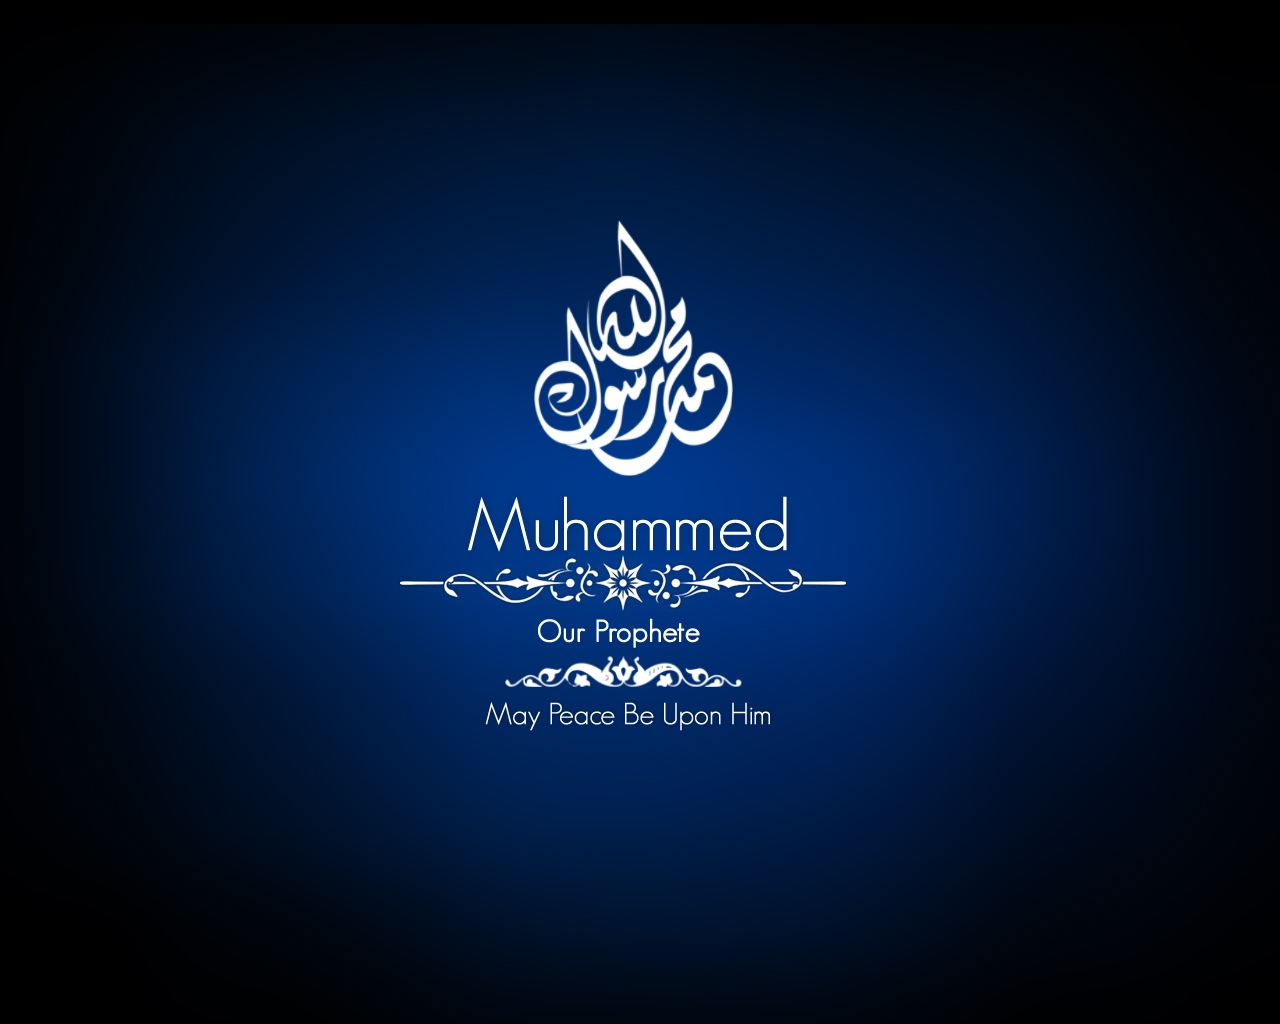 Wallpaper iphone islamic - Wallpapers